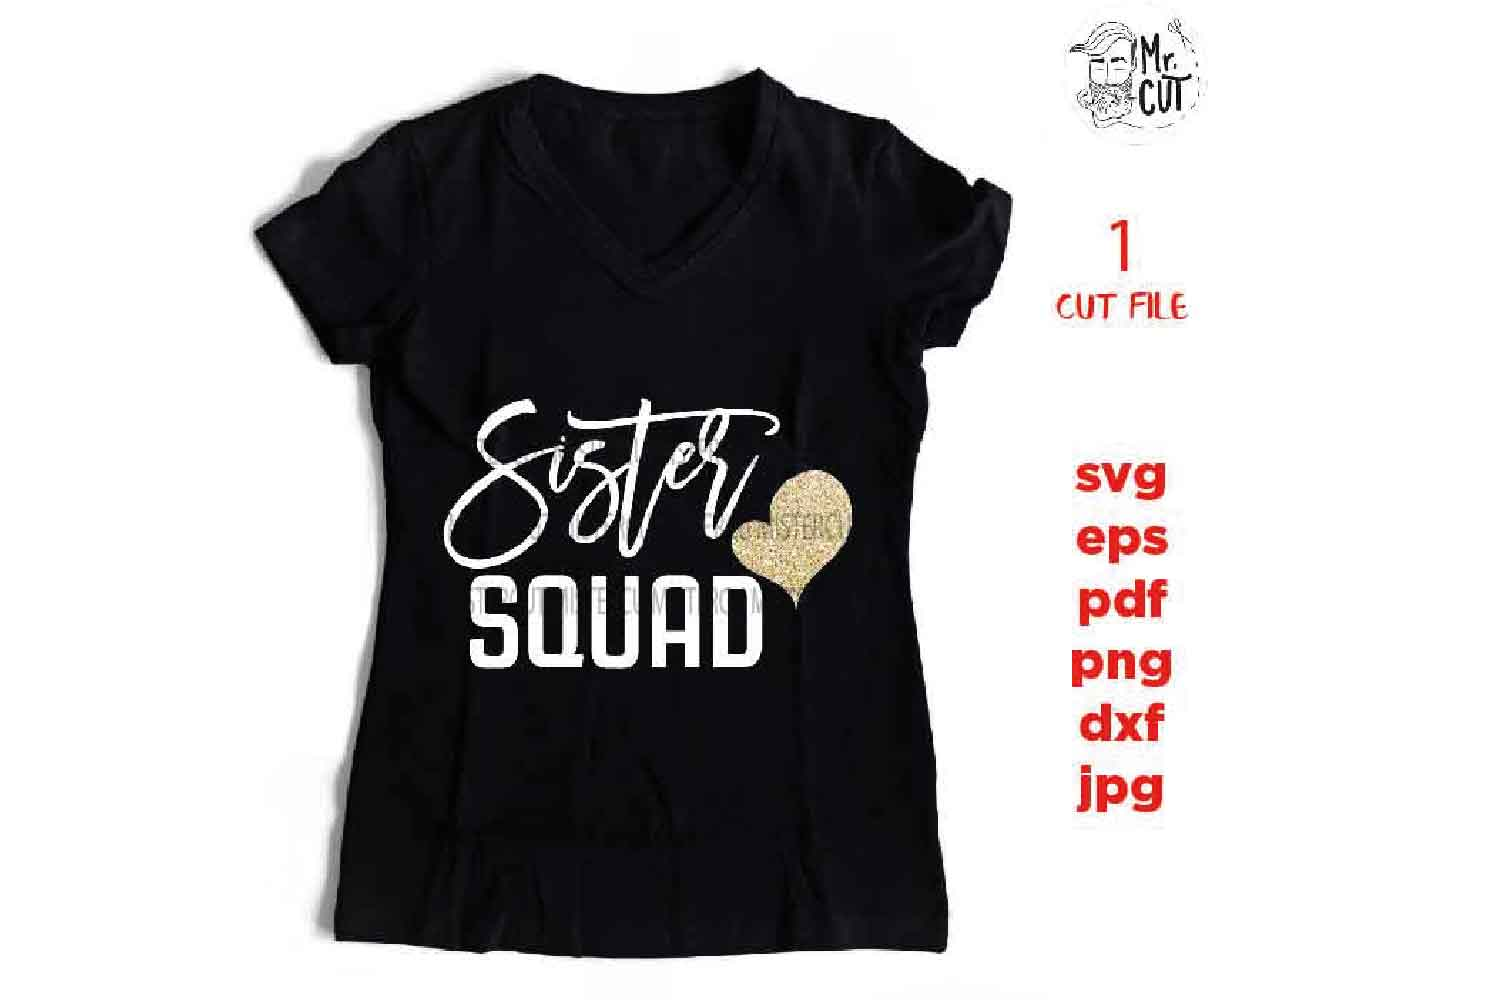 sister squad svg, dxf, jpg reverse, cut file, Gifts for Wome example image 1